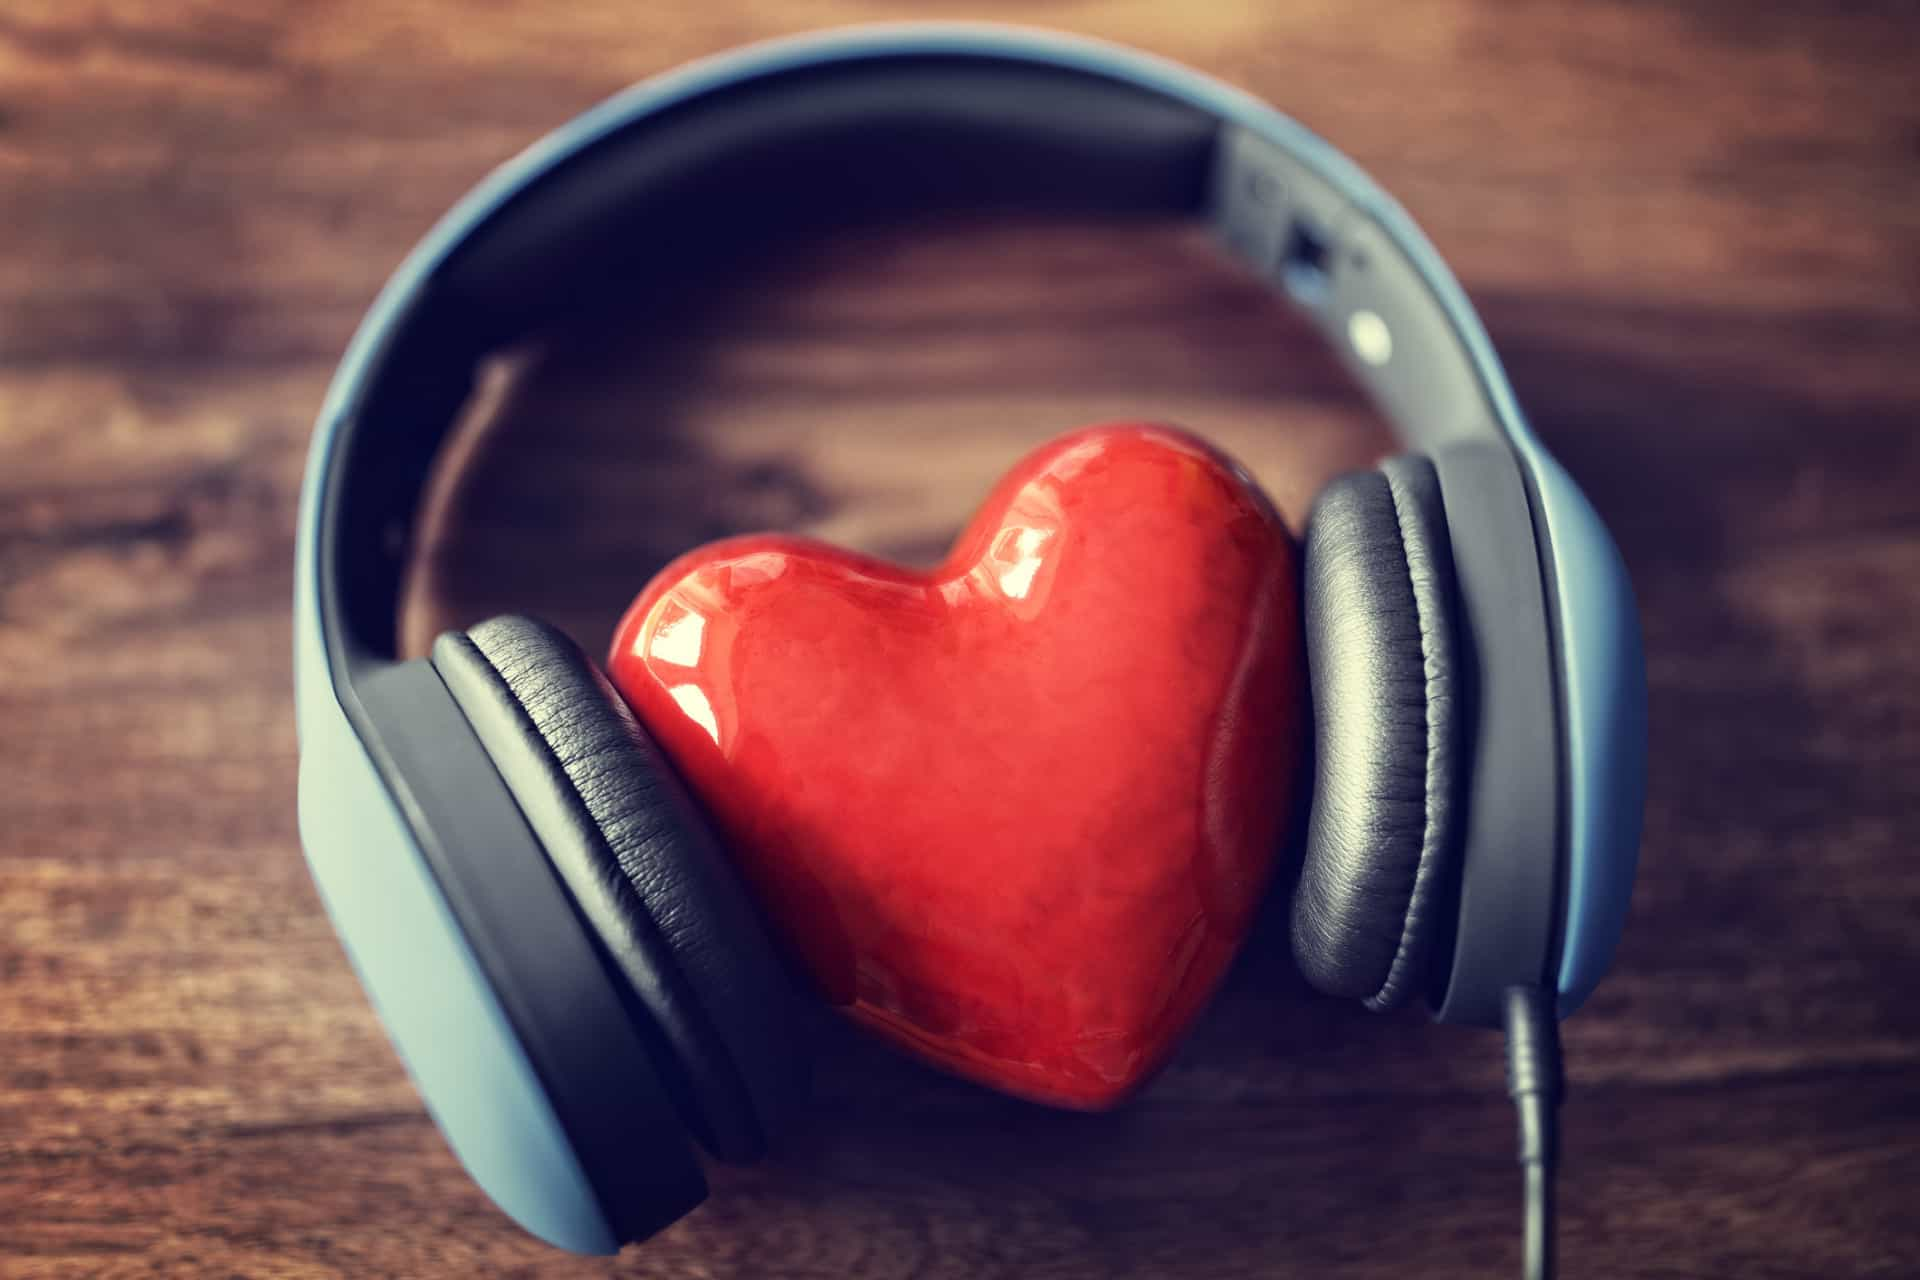 30 love songs that'll get you in the mood